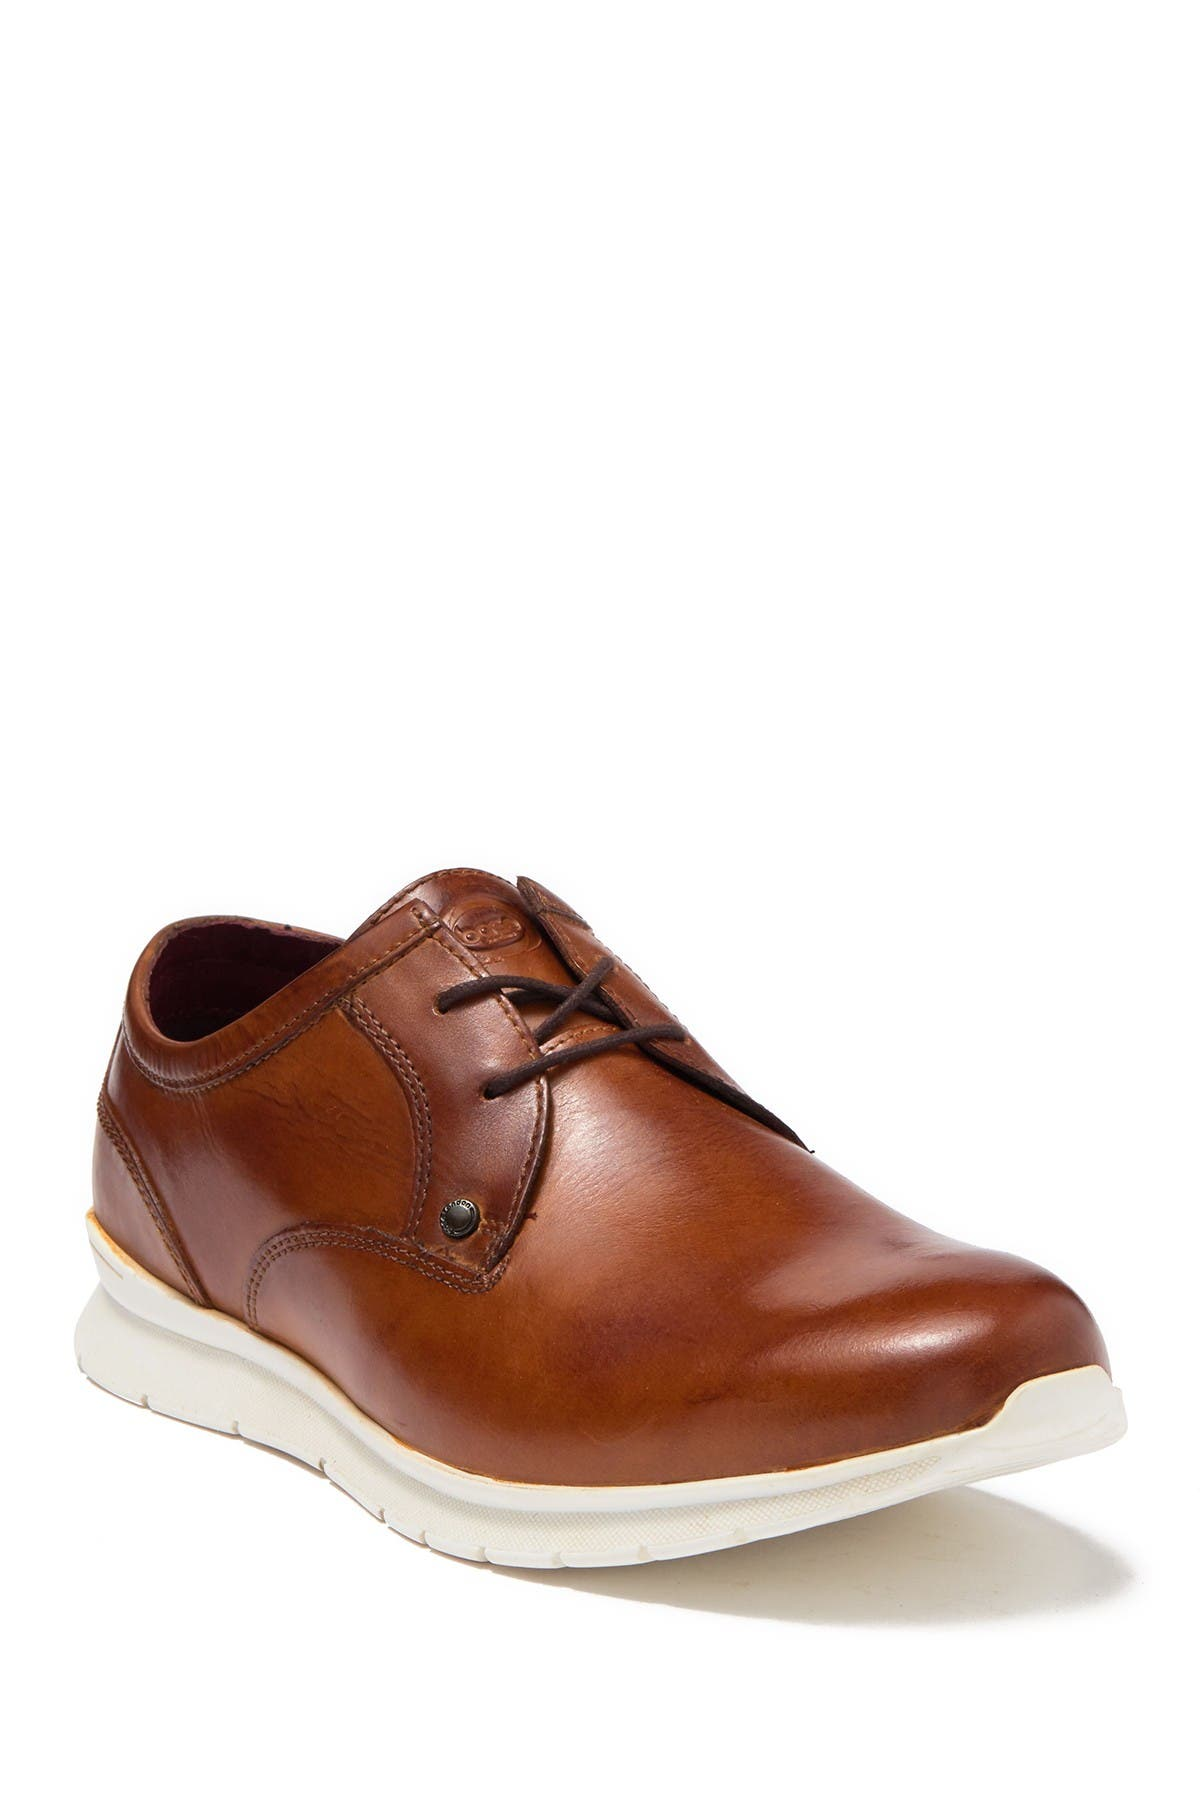 Image of Base London Cubic Leather Derby Sneaker